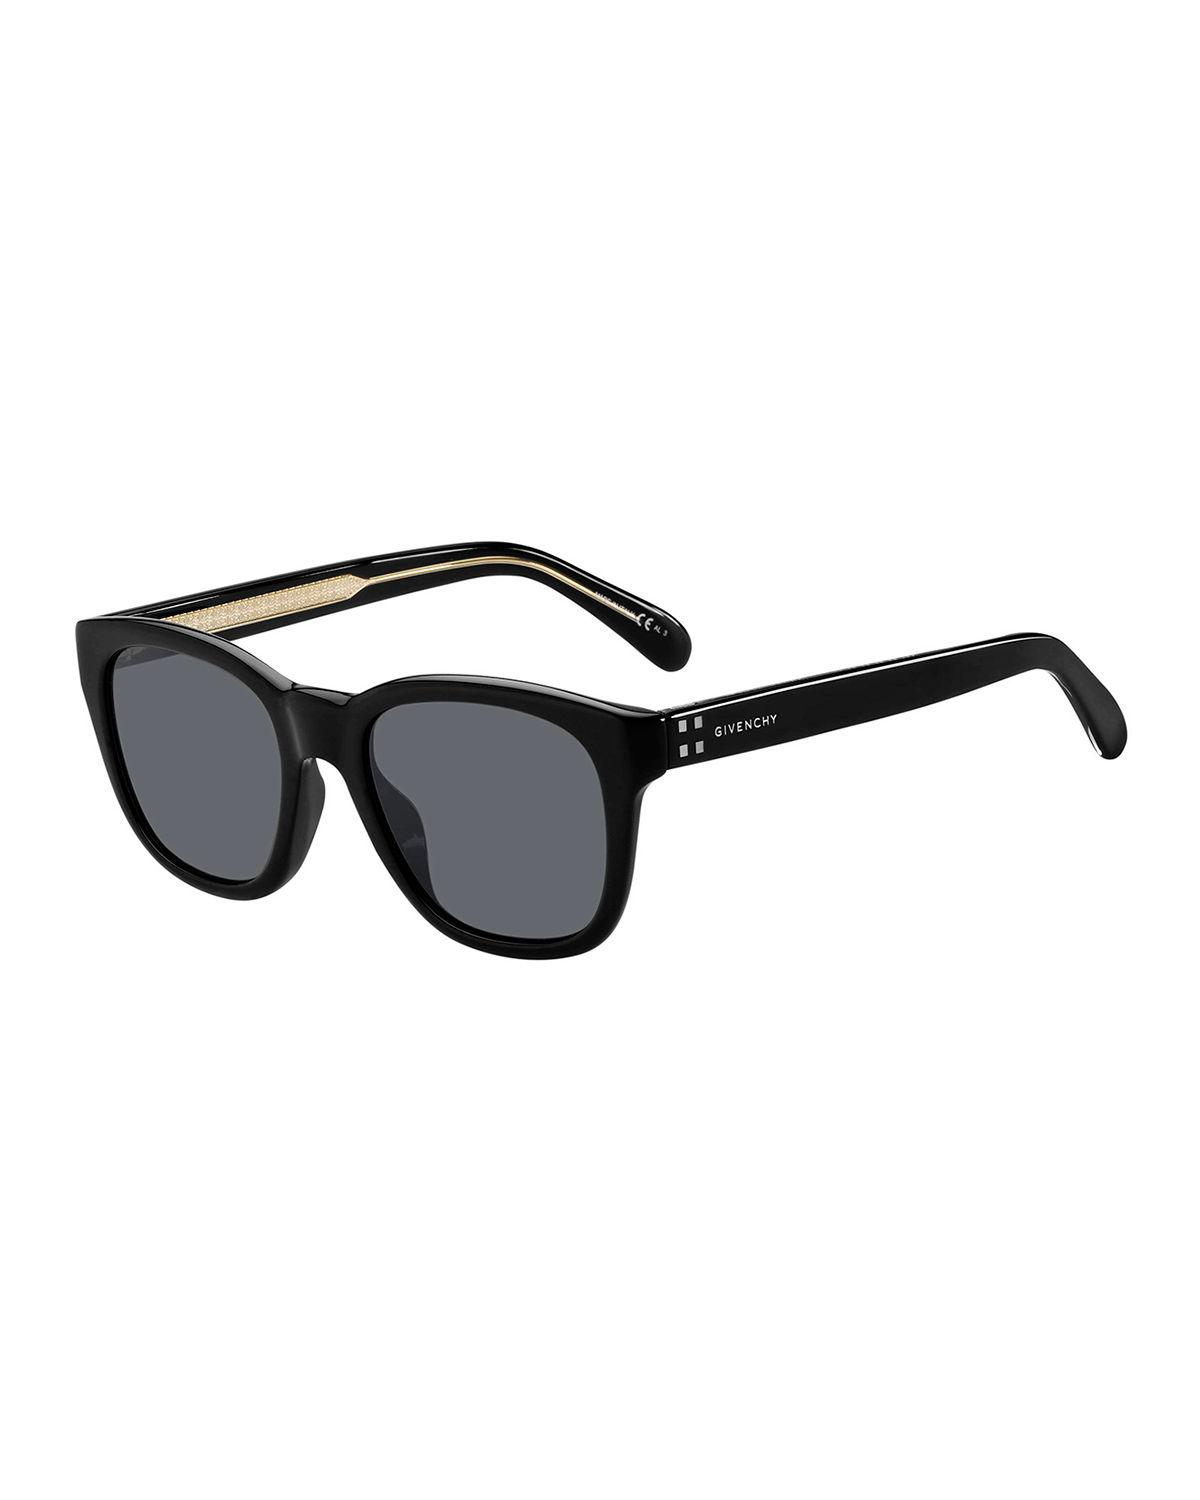 Givenchy Men's Square Acetate Sunglasses In Black